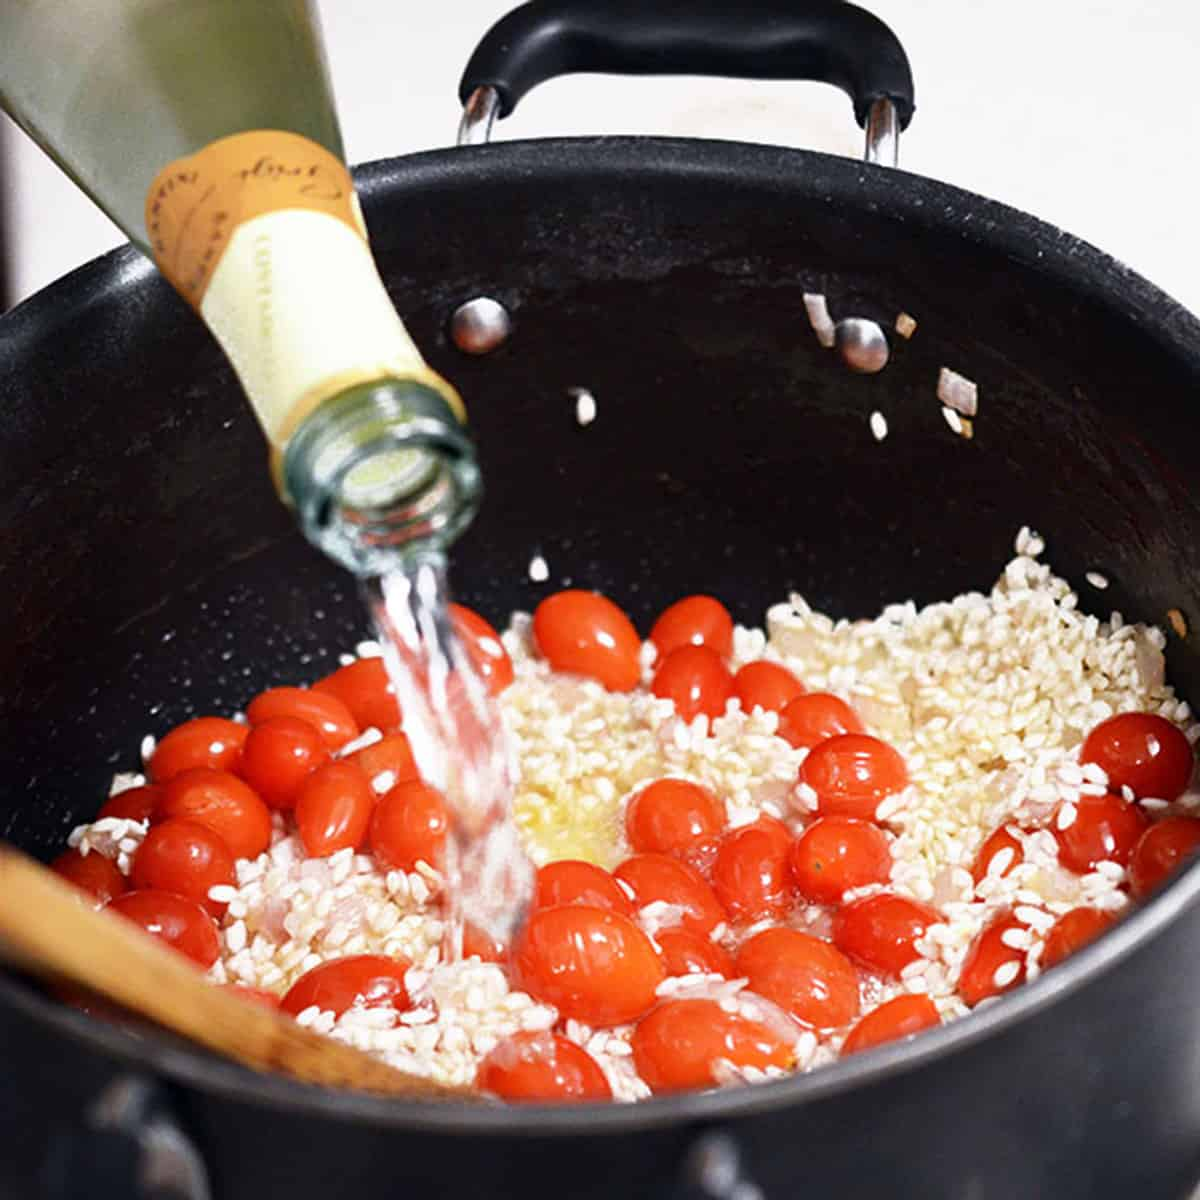 Adding white wine to risotto and tomatoes.